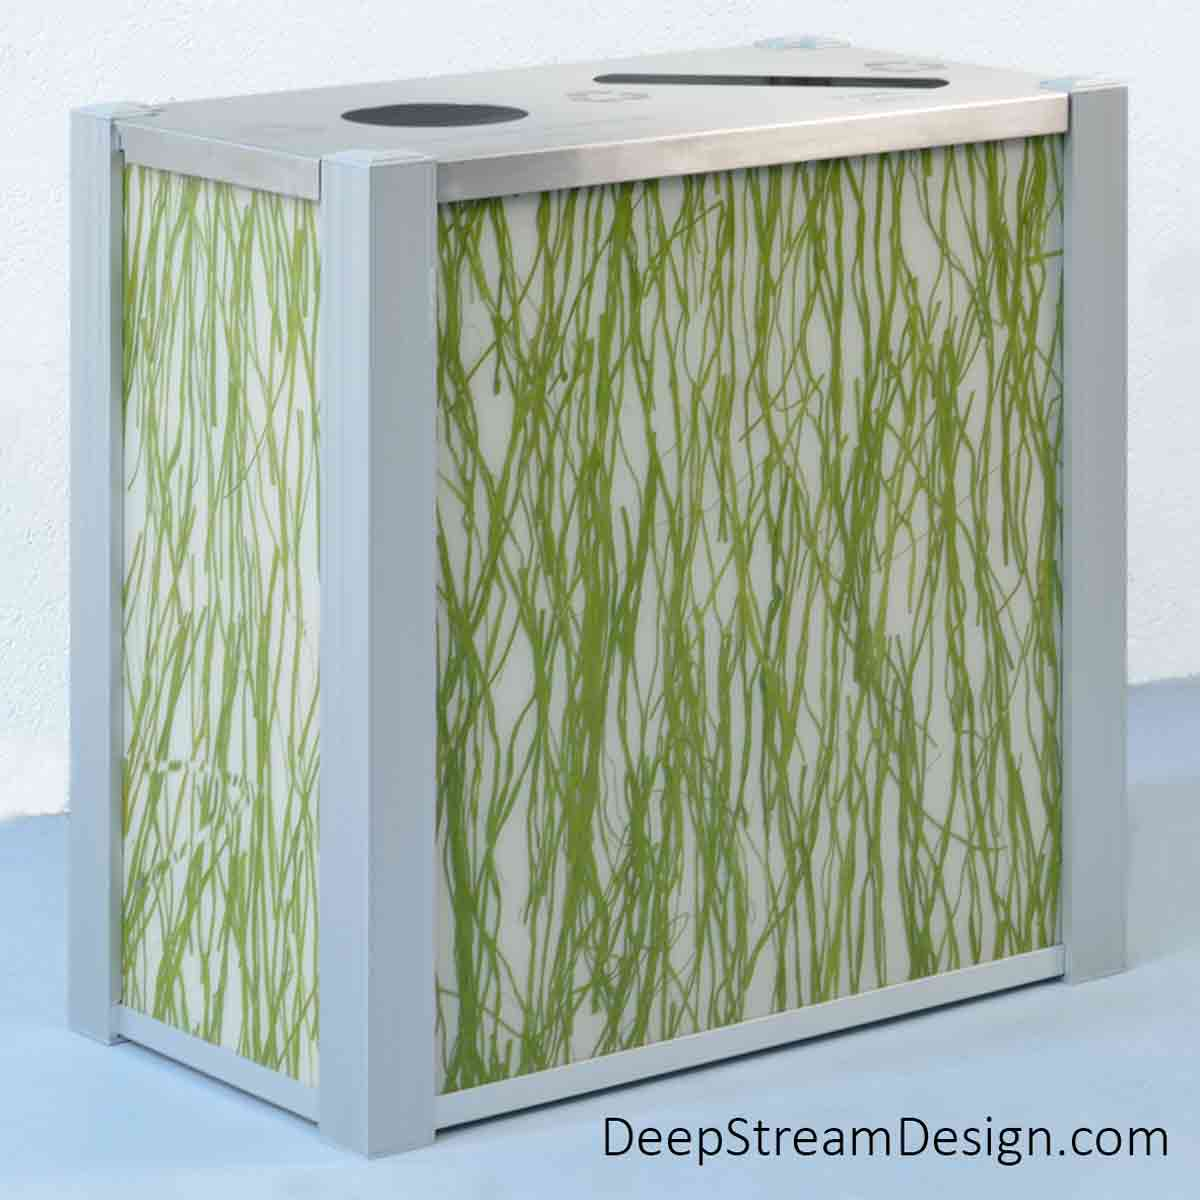 A studio photo of a dual-stream DeepStream Audubon modern commercial combined recycling and trash receptacle with 3form Eco-Resin panels crafted with green seaweed.